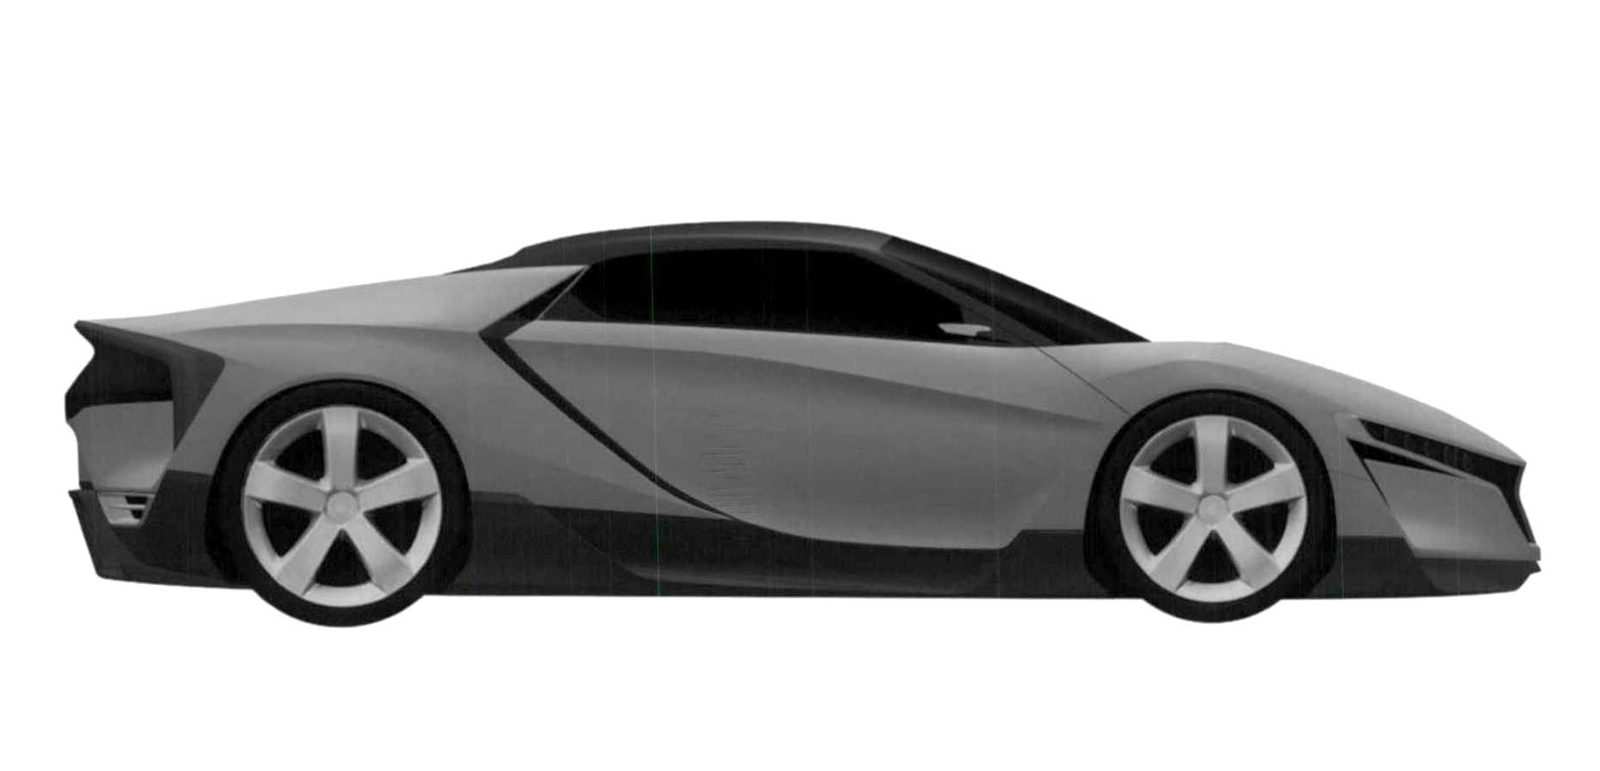 Is This CAD Sketch The New Mid-Engine Honda S2000? - Art of Gears